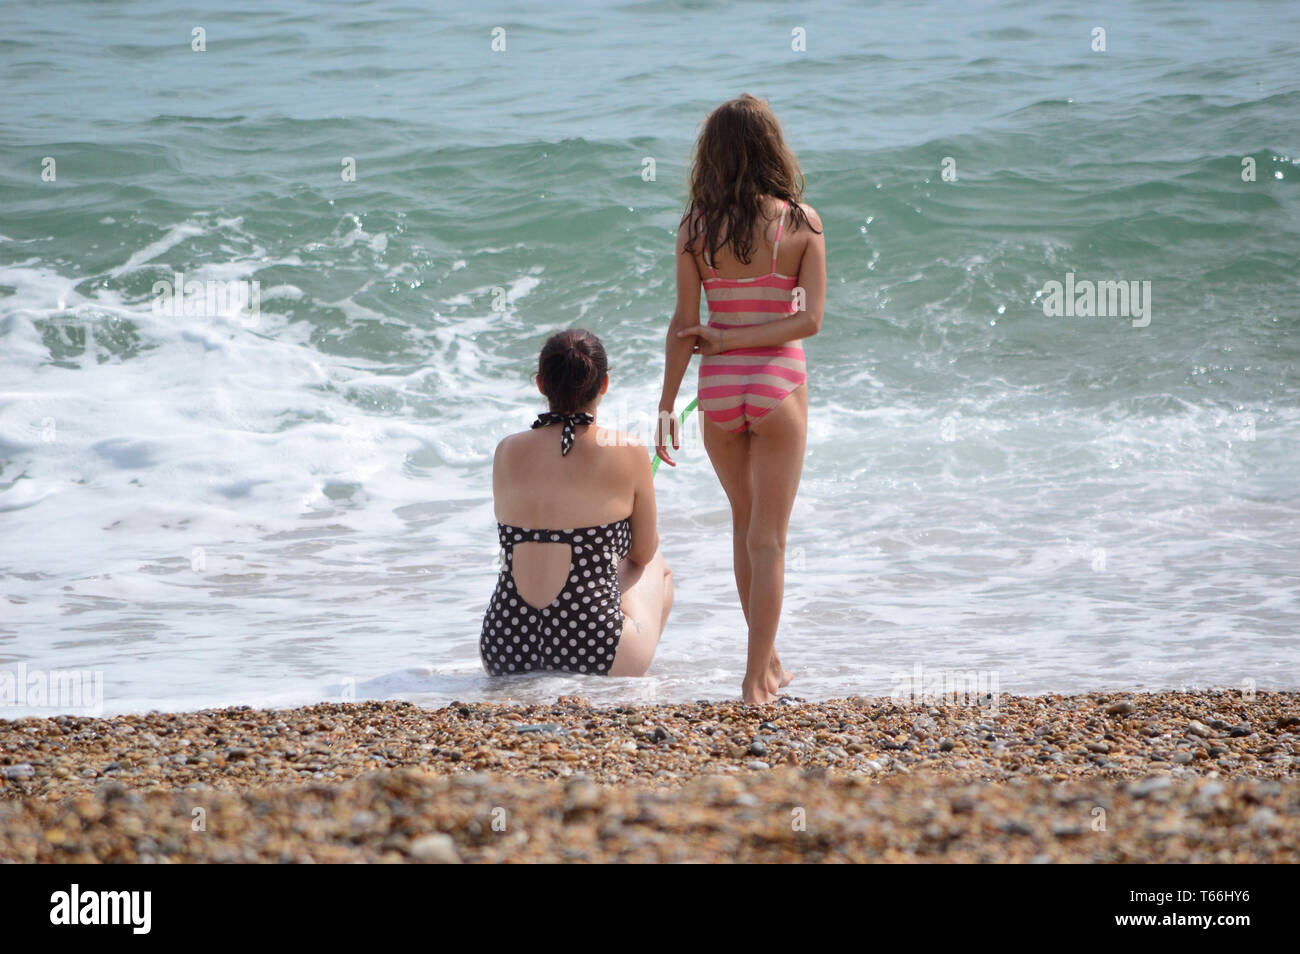 Two young girls in bathing suits, on seaside beach, looking out onto blue sea and white shore waves - Stock Image